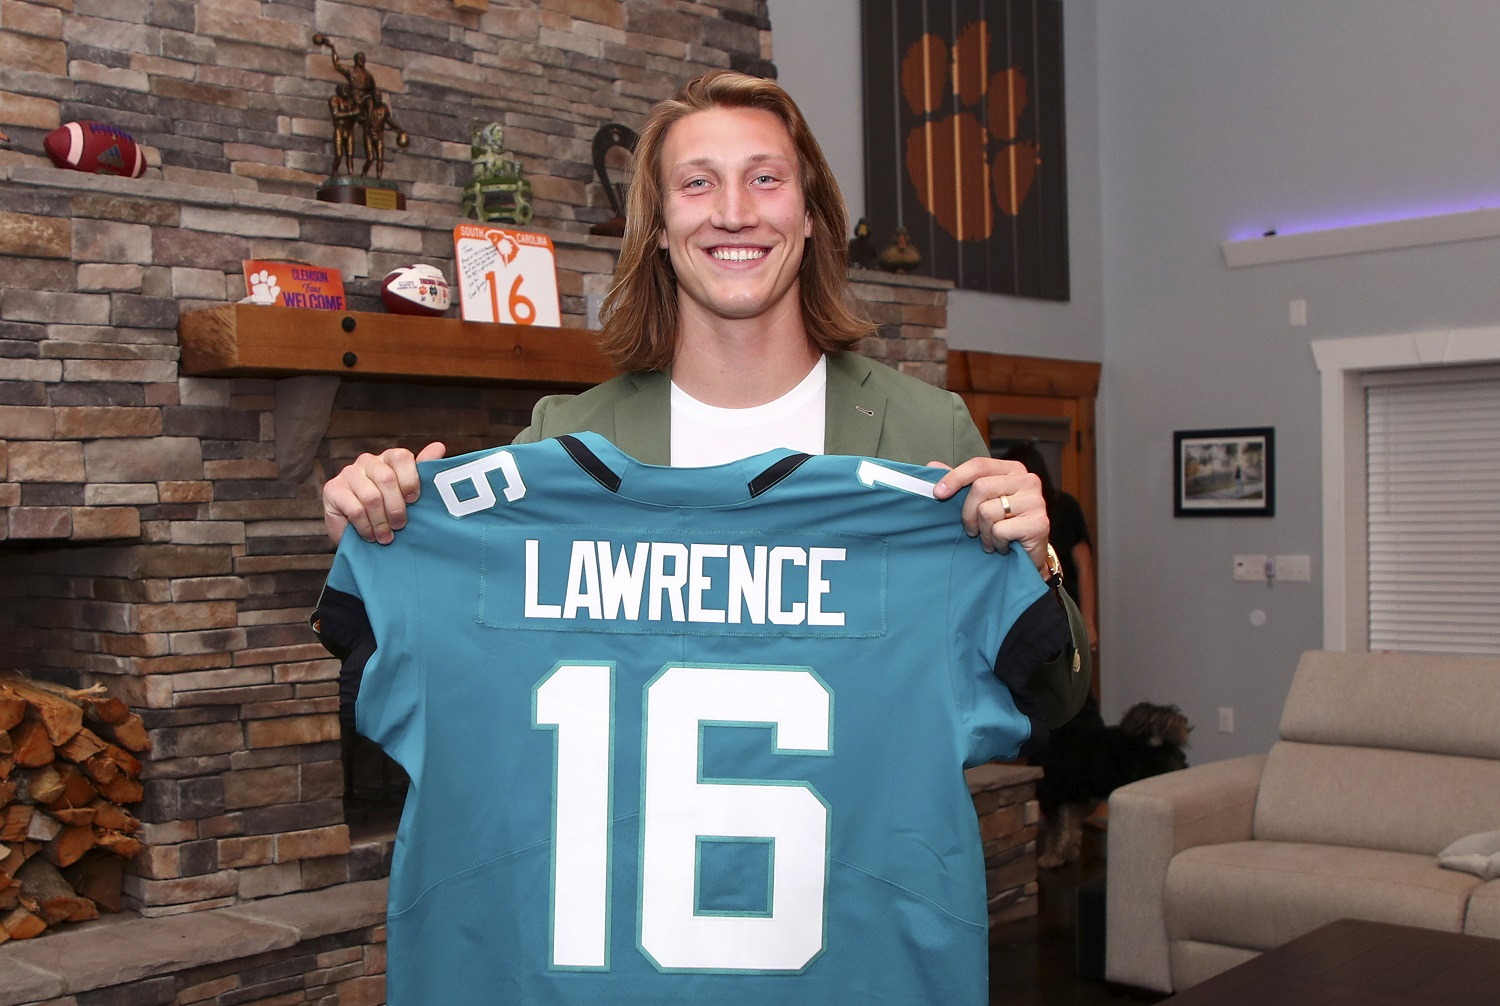 Trevor Lawrence poses after being selected with the first overall pick by the Jacksonville Jaguars in the 2021 NFL Draft.   Logan Bowles/NFL via Getty Images